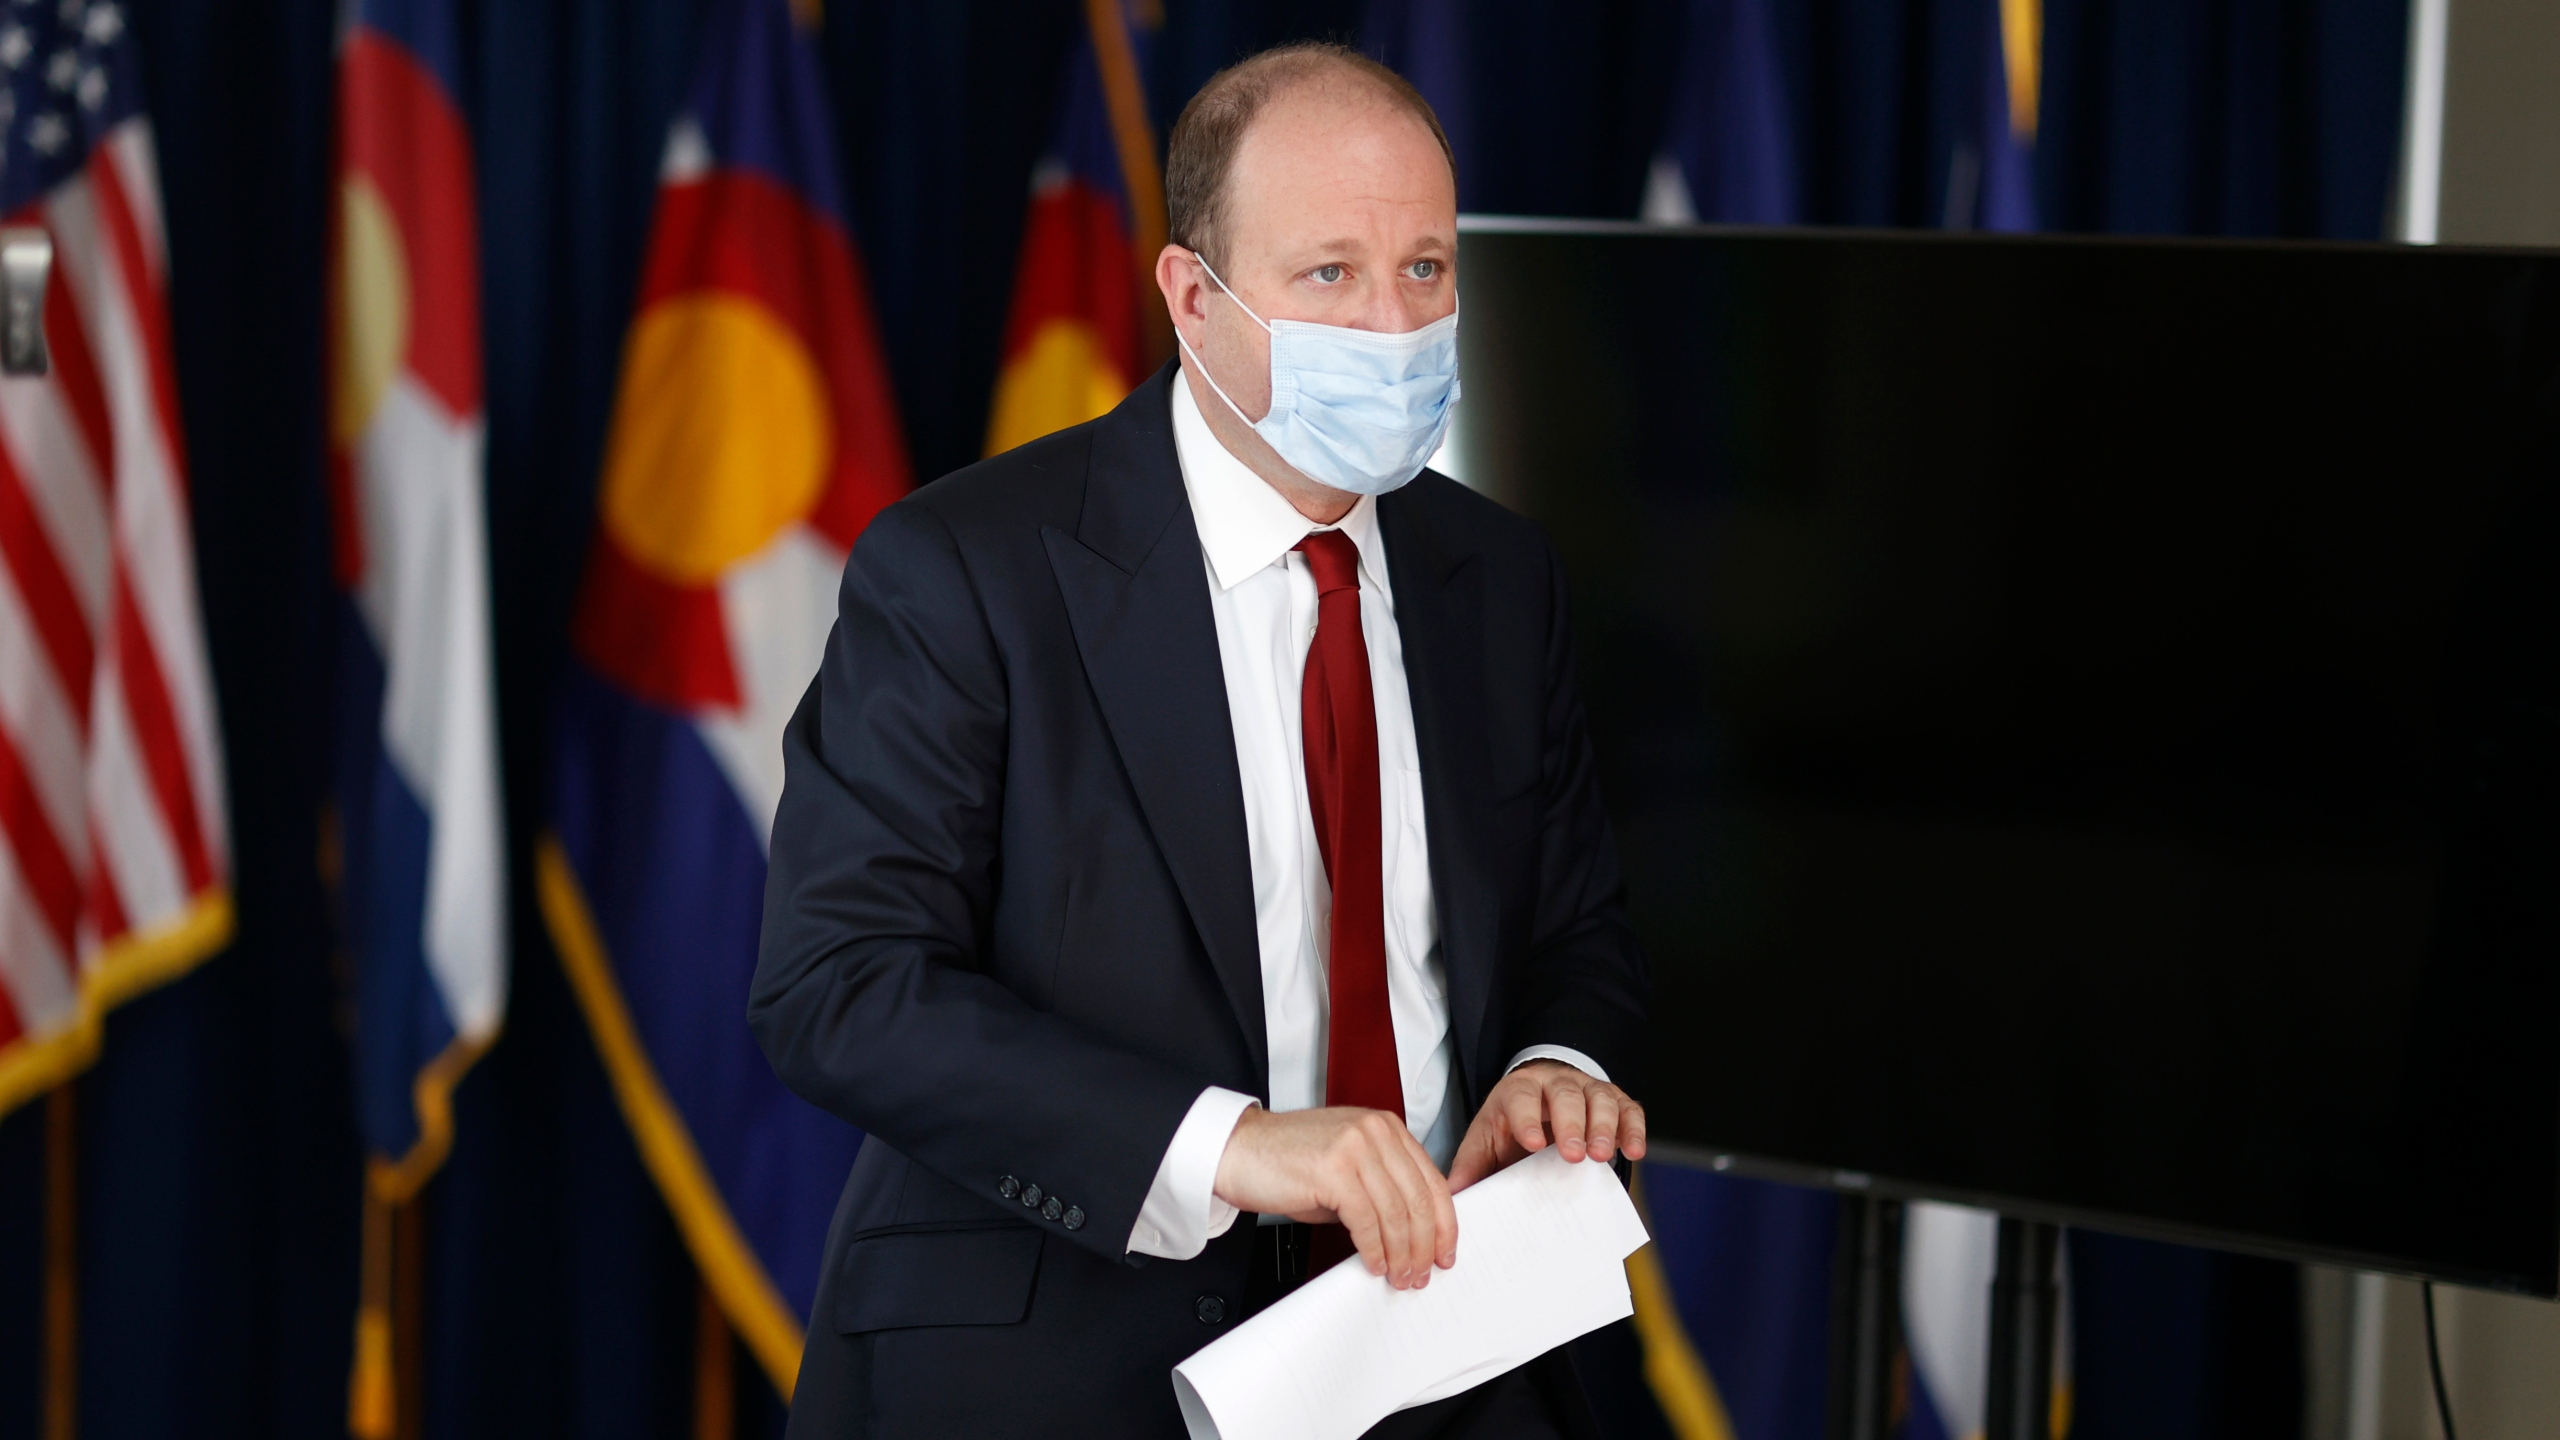 Colorado Governor Jared Polis heads out of a news conference on the state's efforts to deal with the effects of the new coronavirus Tuesday, June 9, 2020, in Denver. (AP Photo/David Zalubowski)